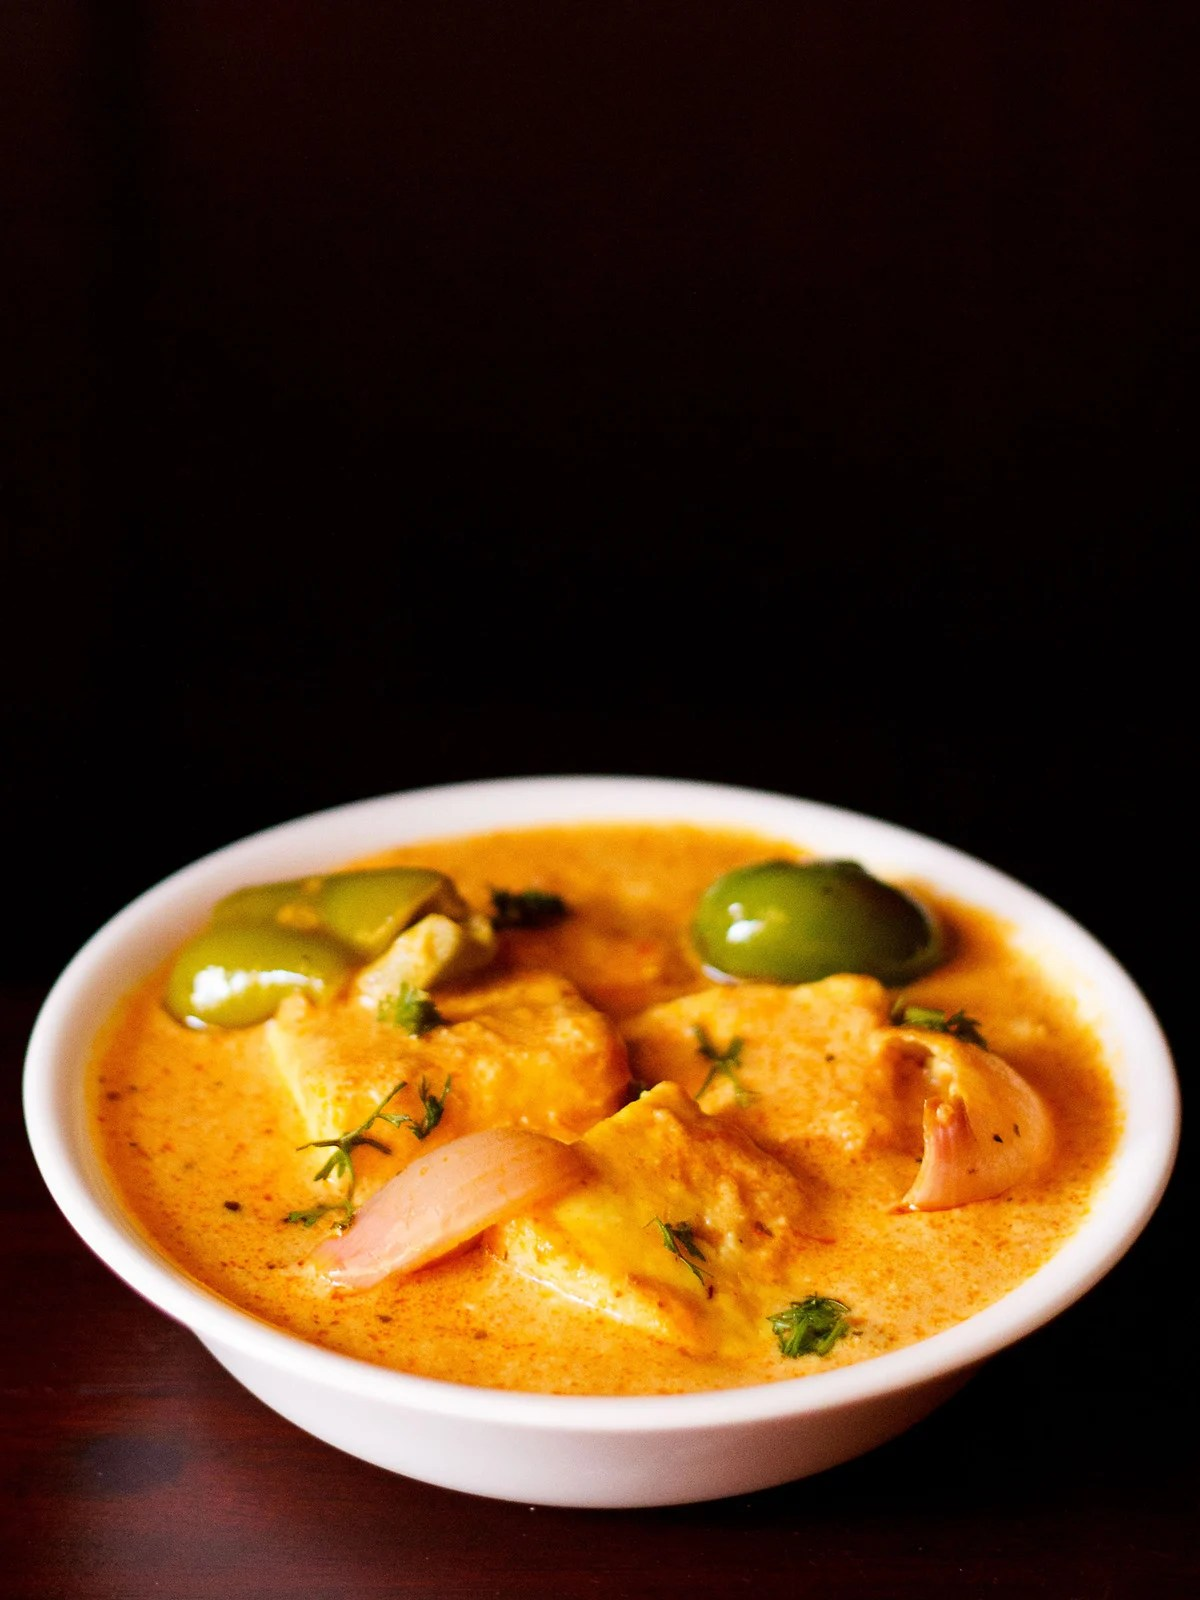 paneer tikka masala served in a white bowl garnished with some coriander leaves on a dark mahogany board